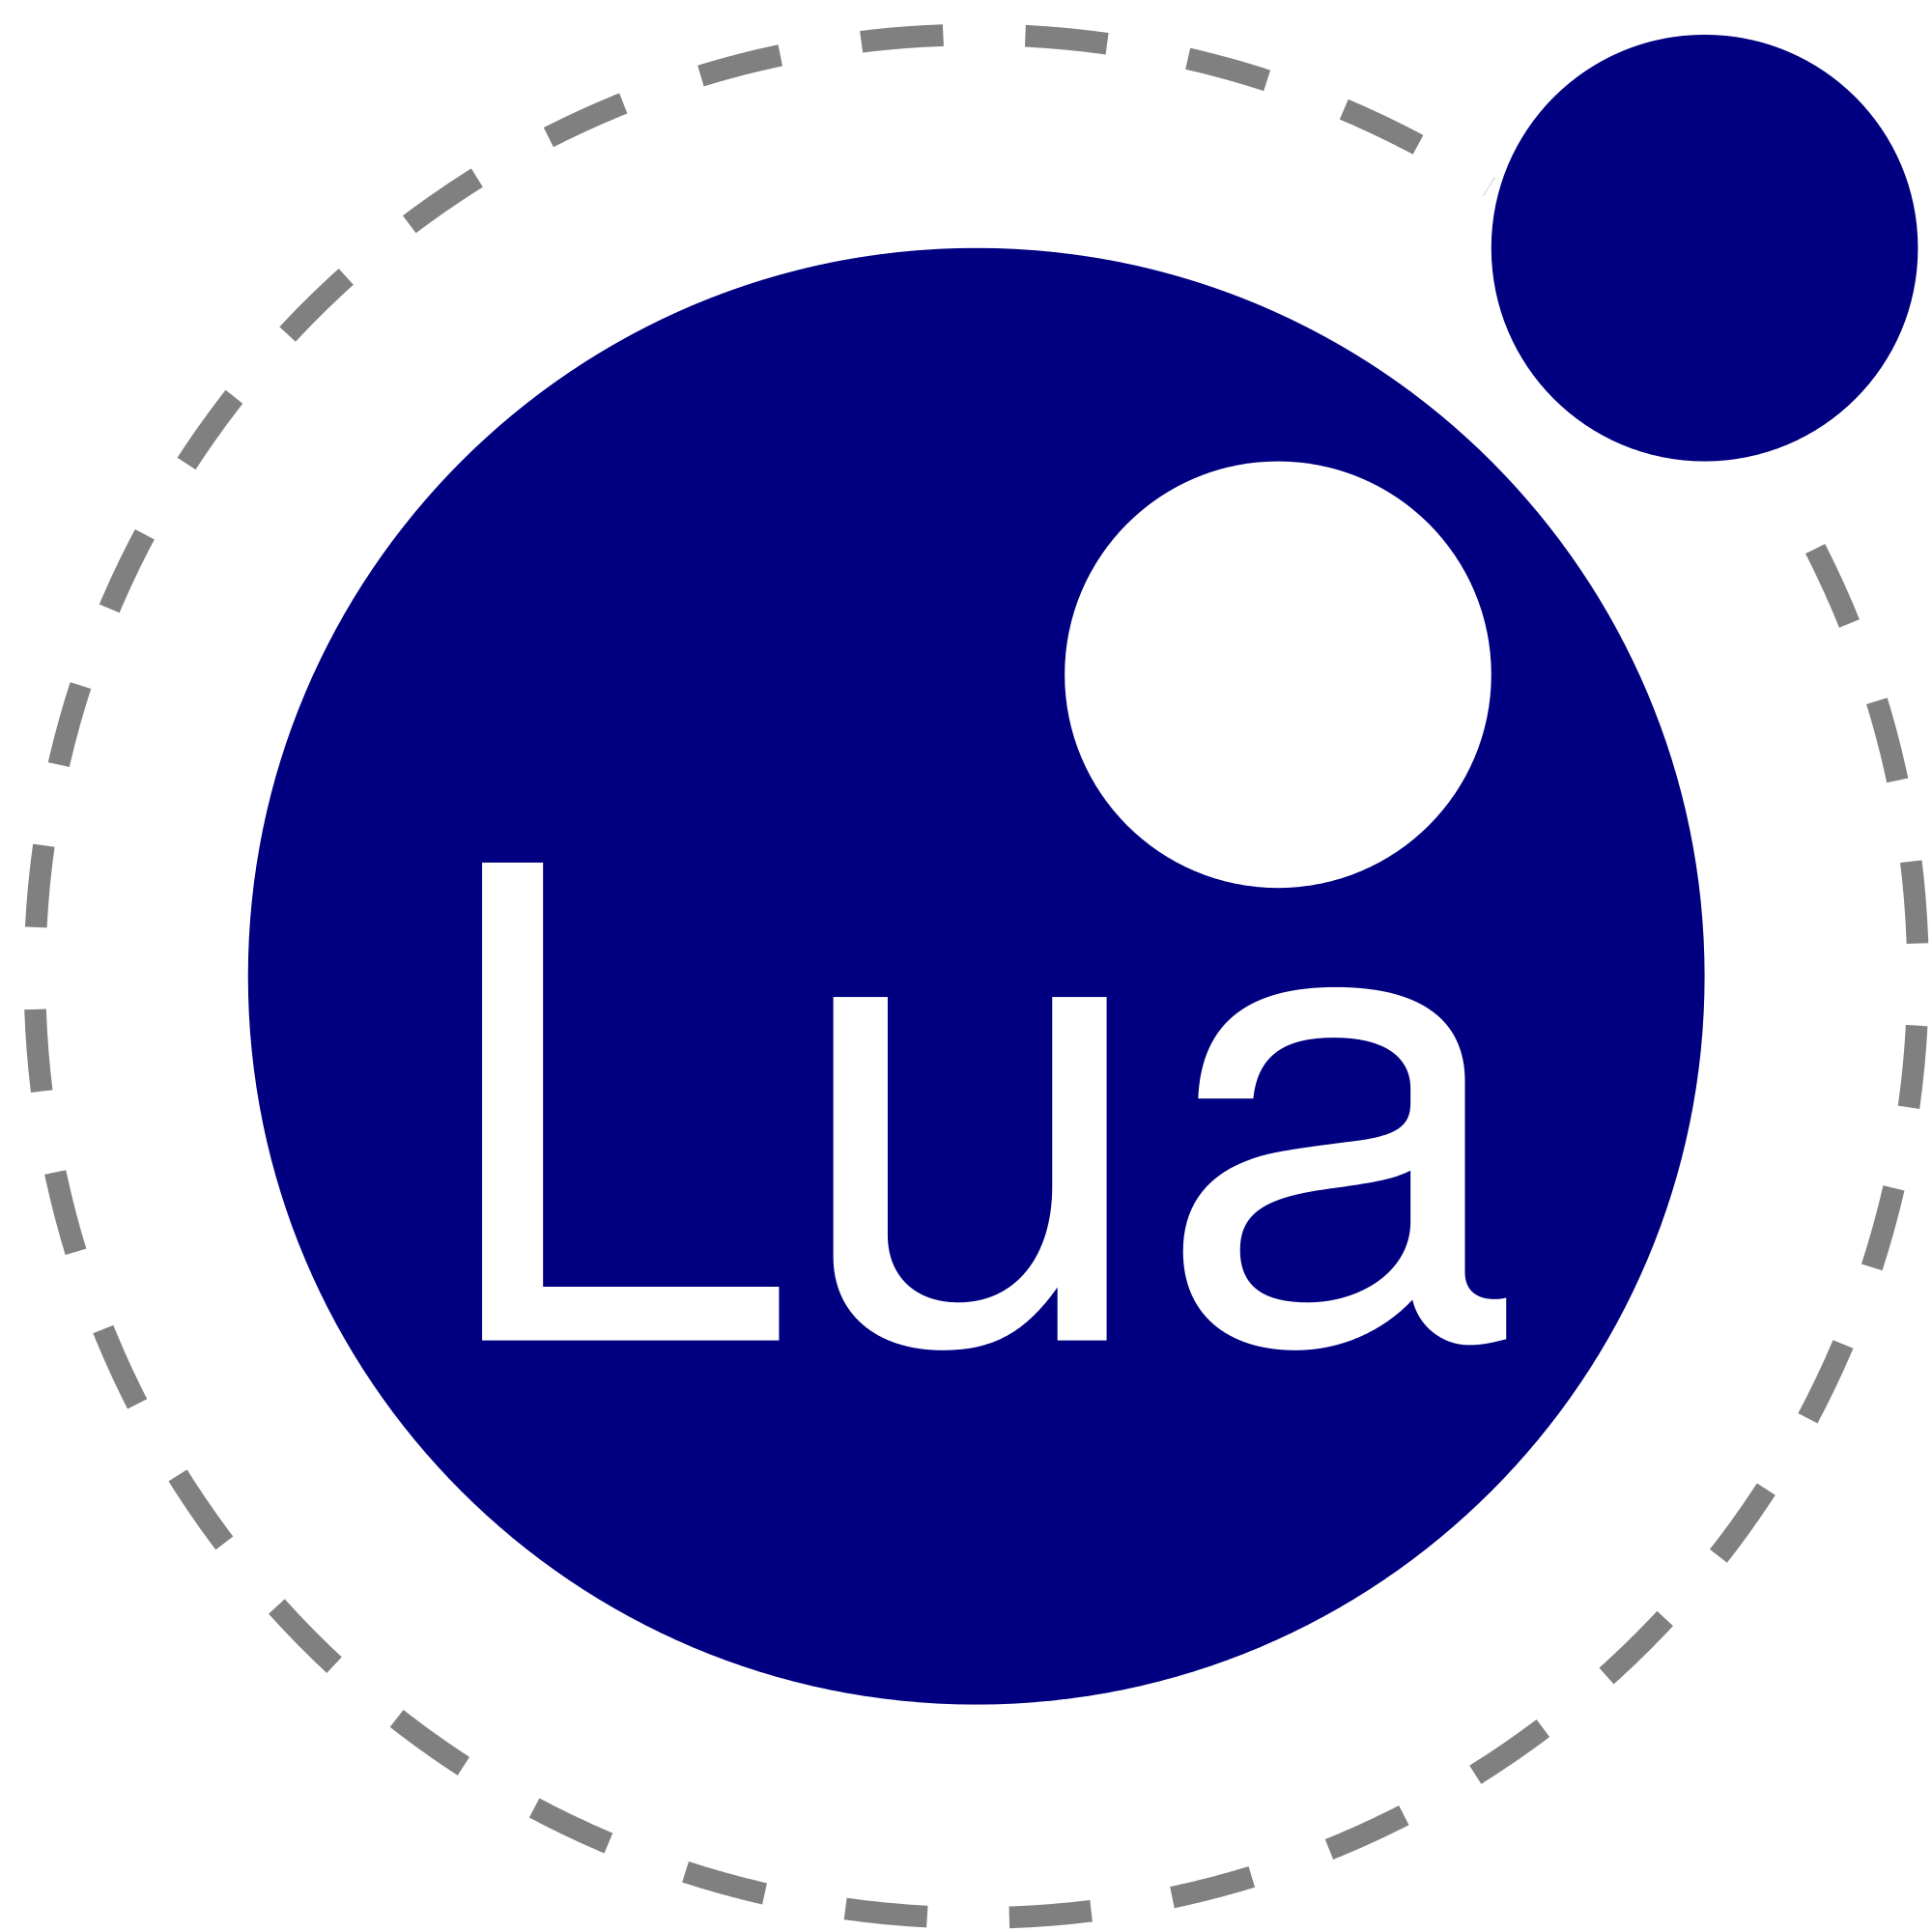 Svg objects programming. File lua logo nolabel